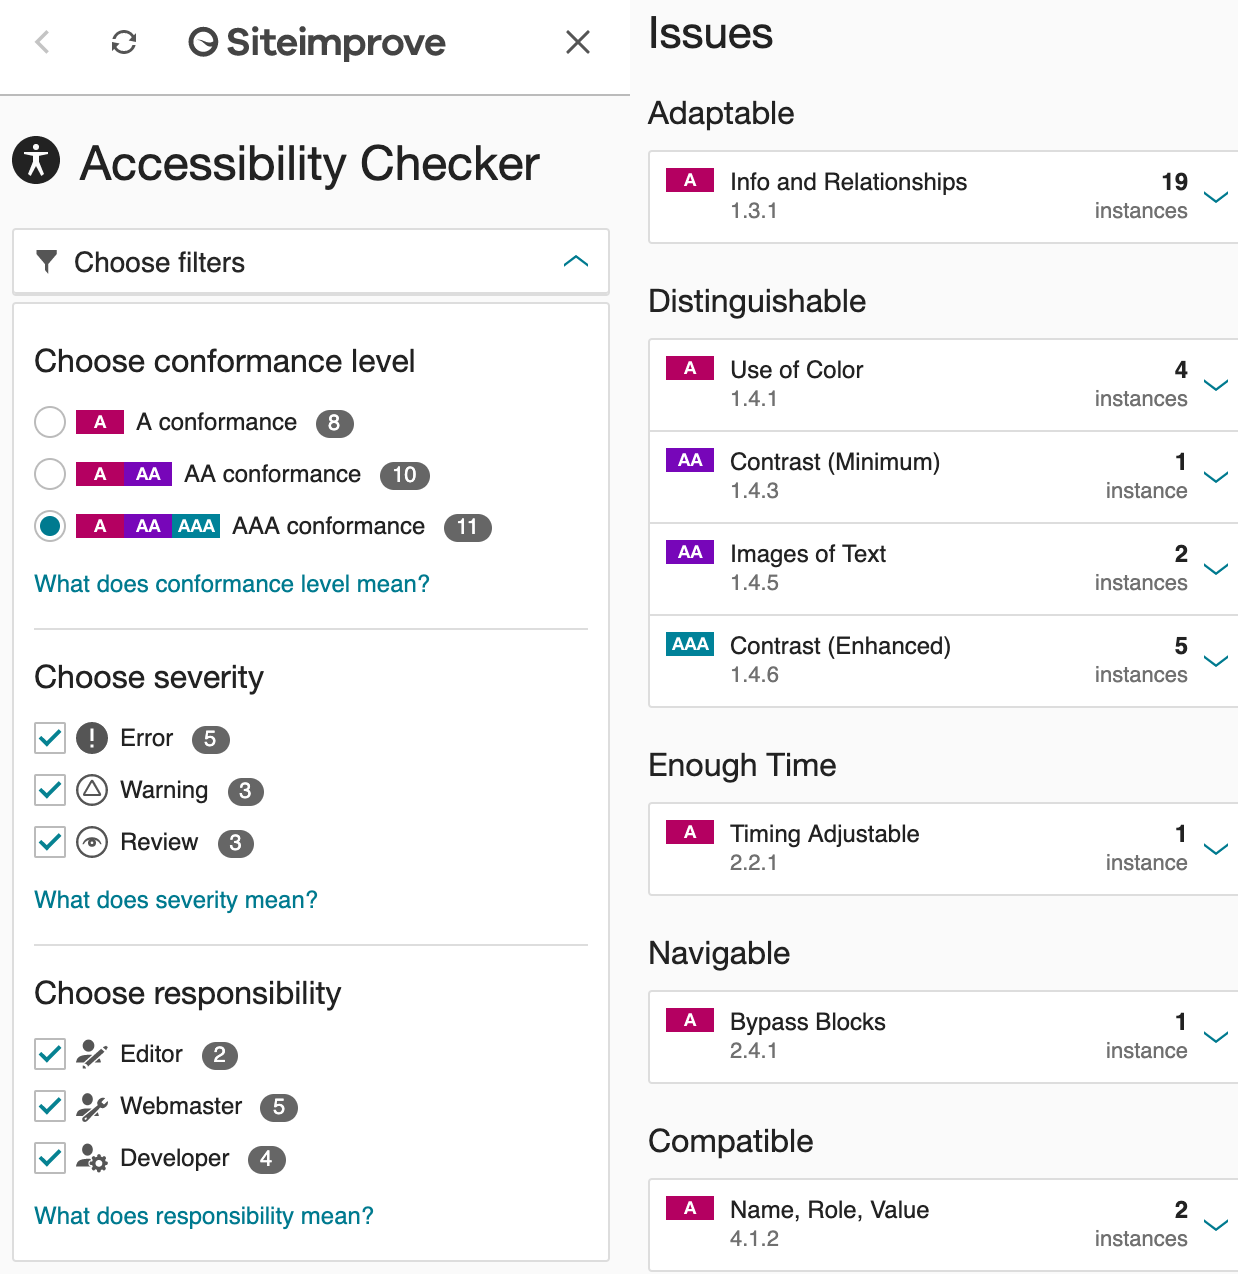 Screengrab of Siteimprove's test results screen, one of our favorite Web Accessibility Tools.